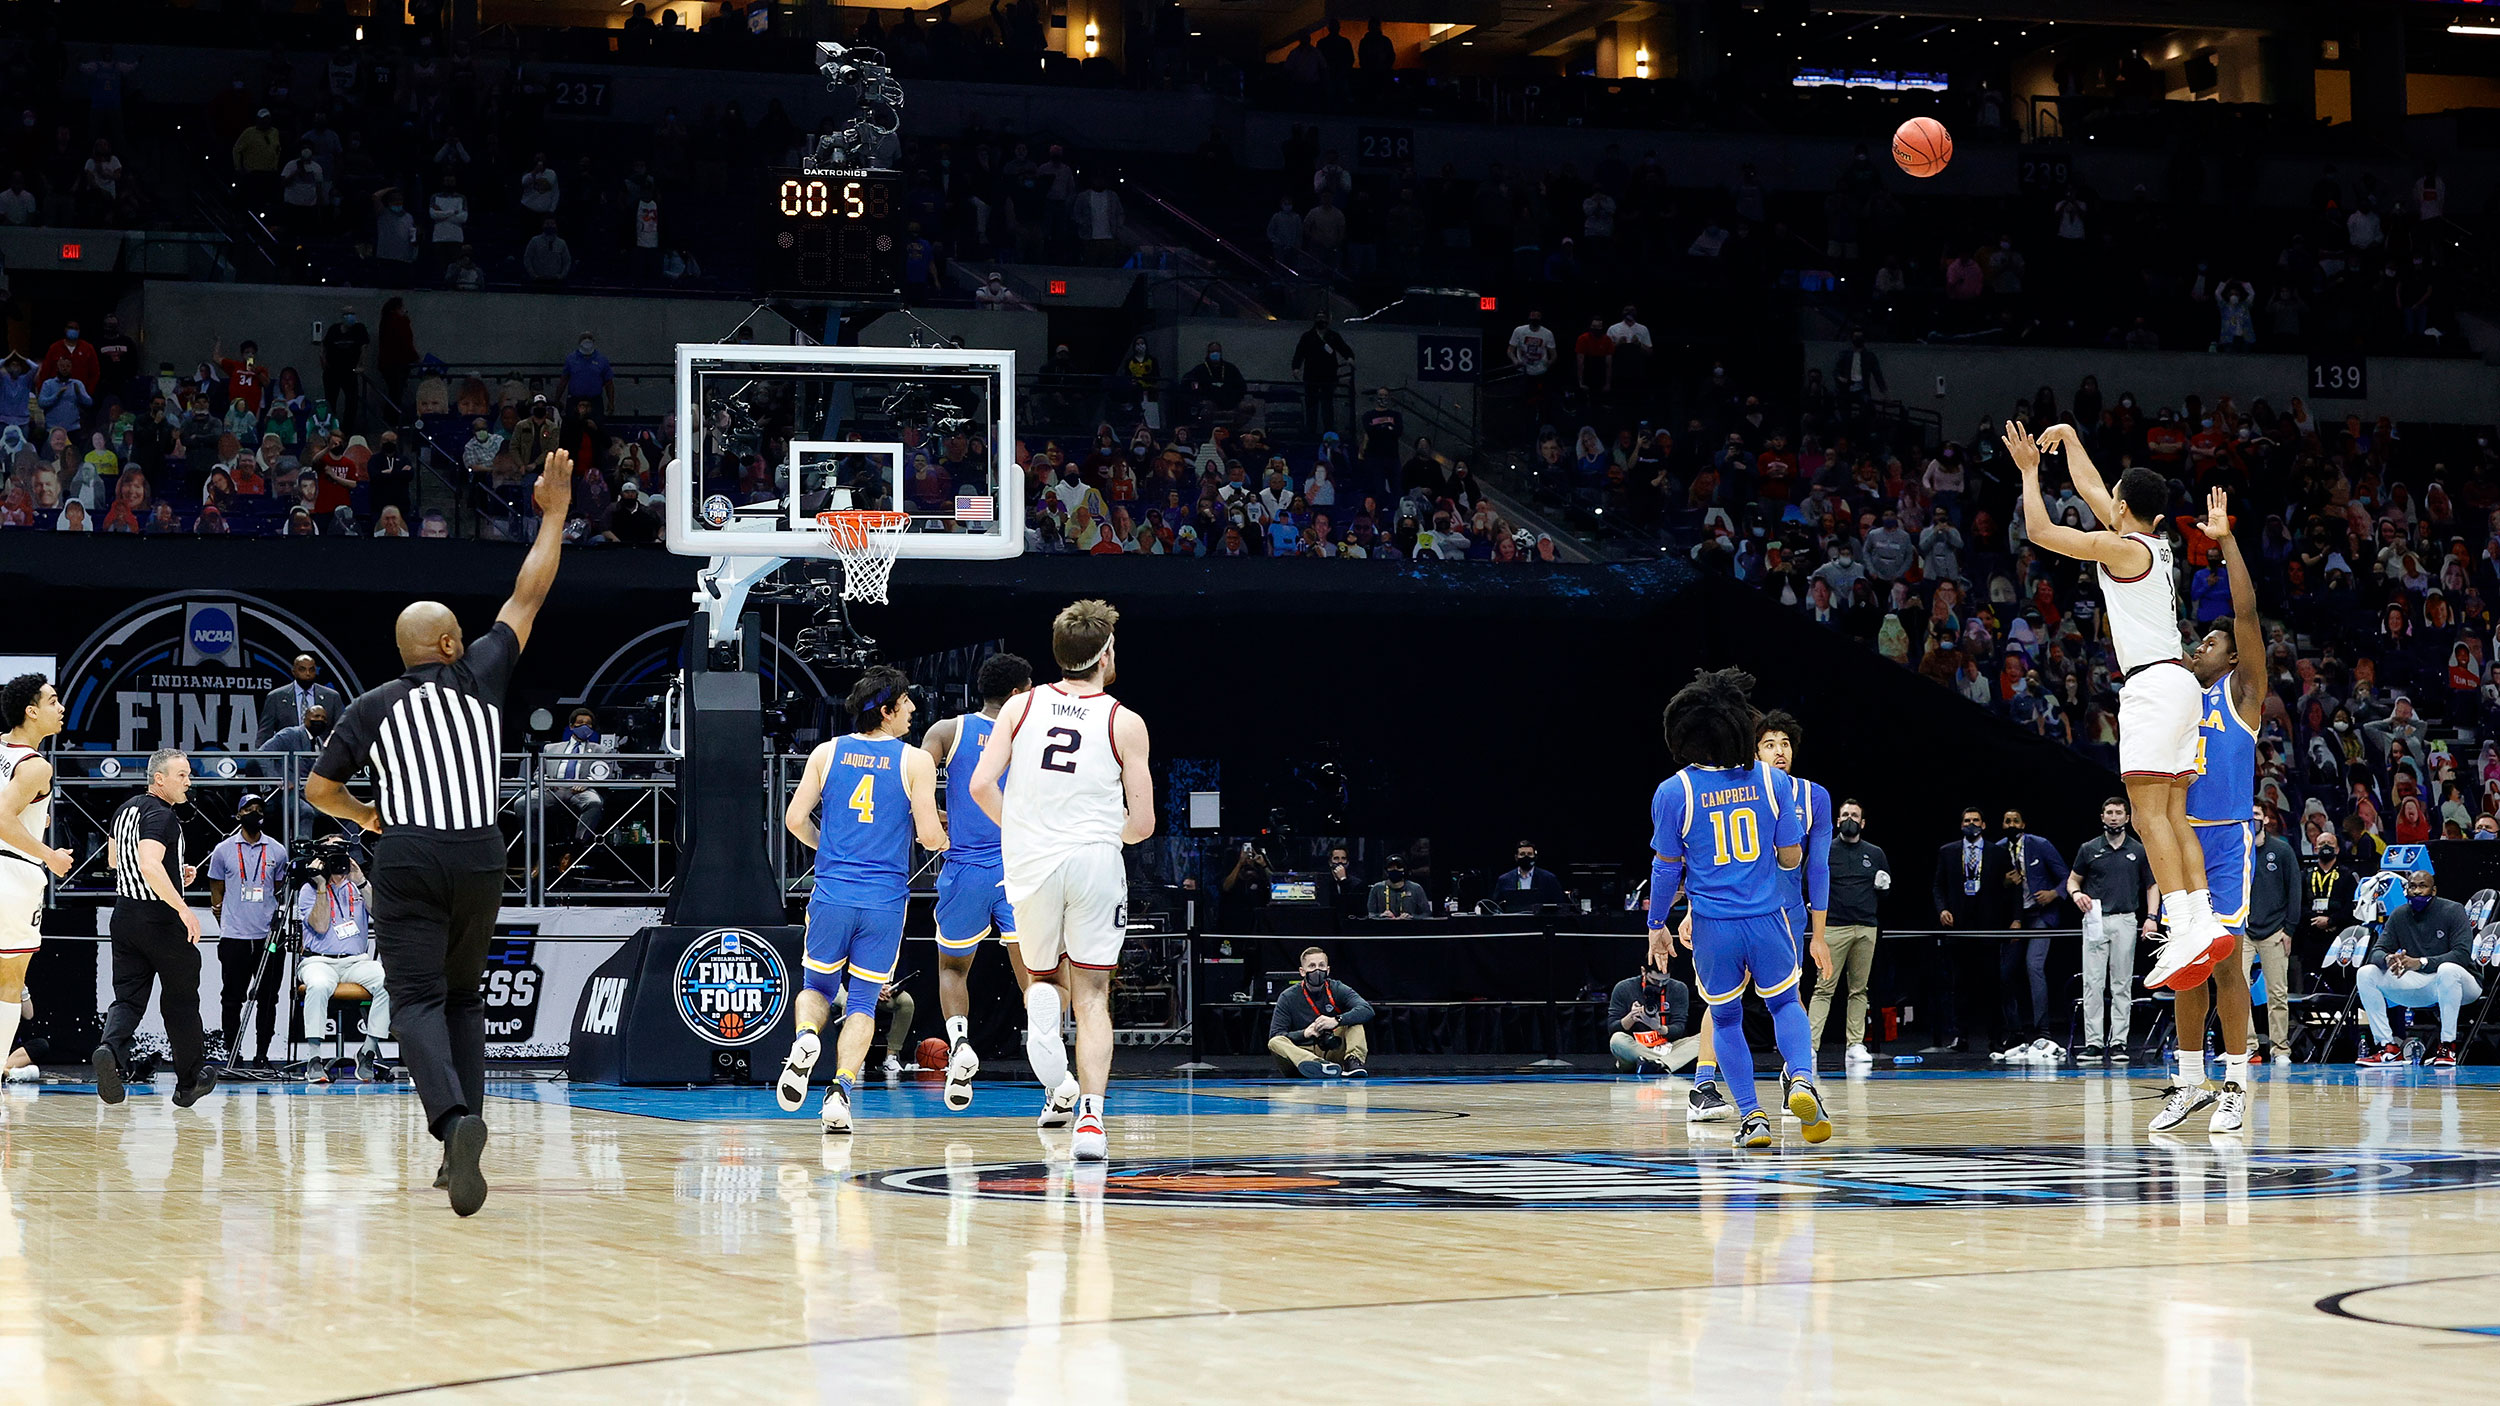 Gonzaga defeats UCLA with buzzer beater and will face Baylor in NCAA men's basketball title game